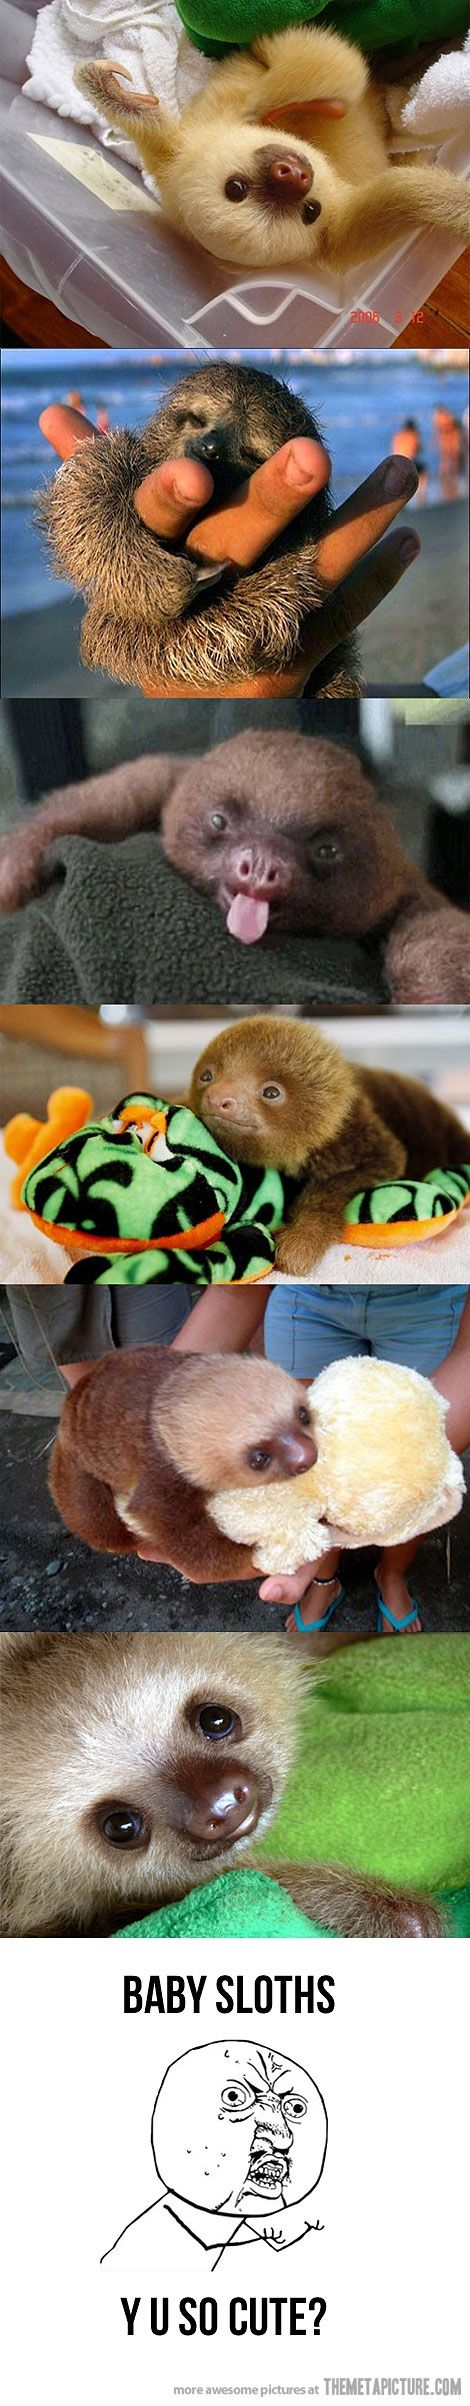 Baby sloths - that's it, I'm getting one